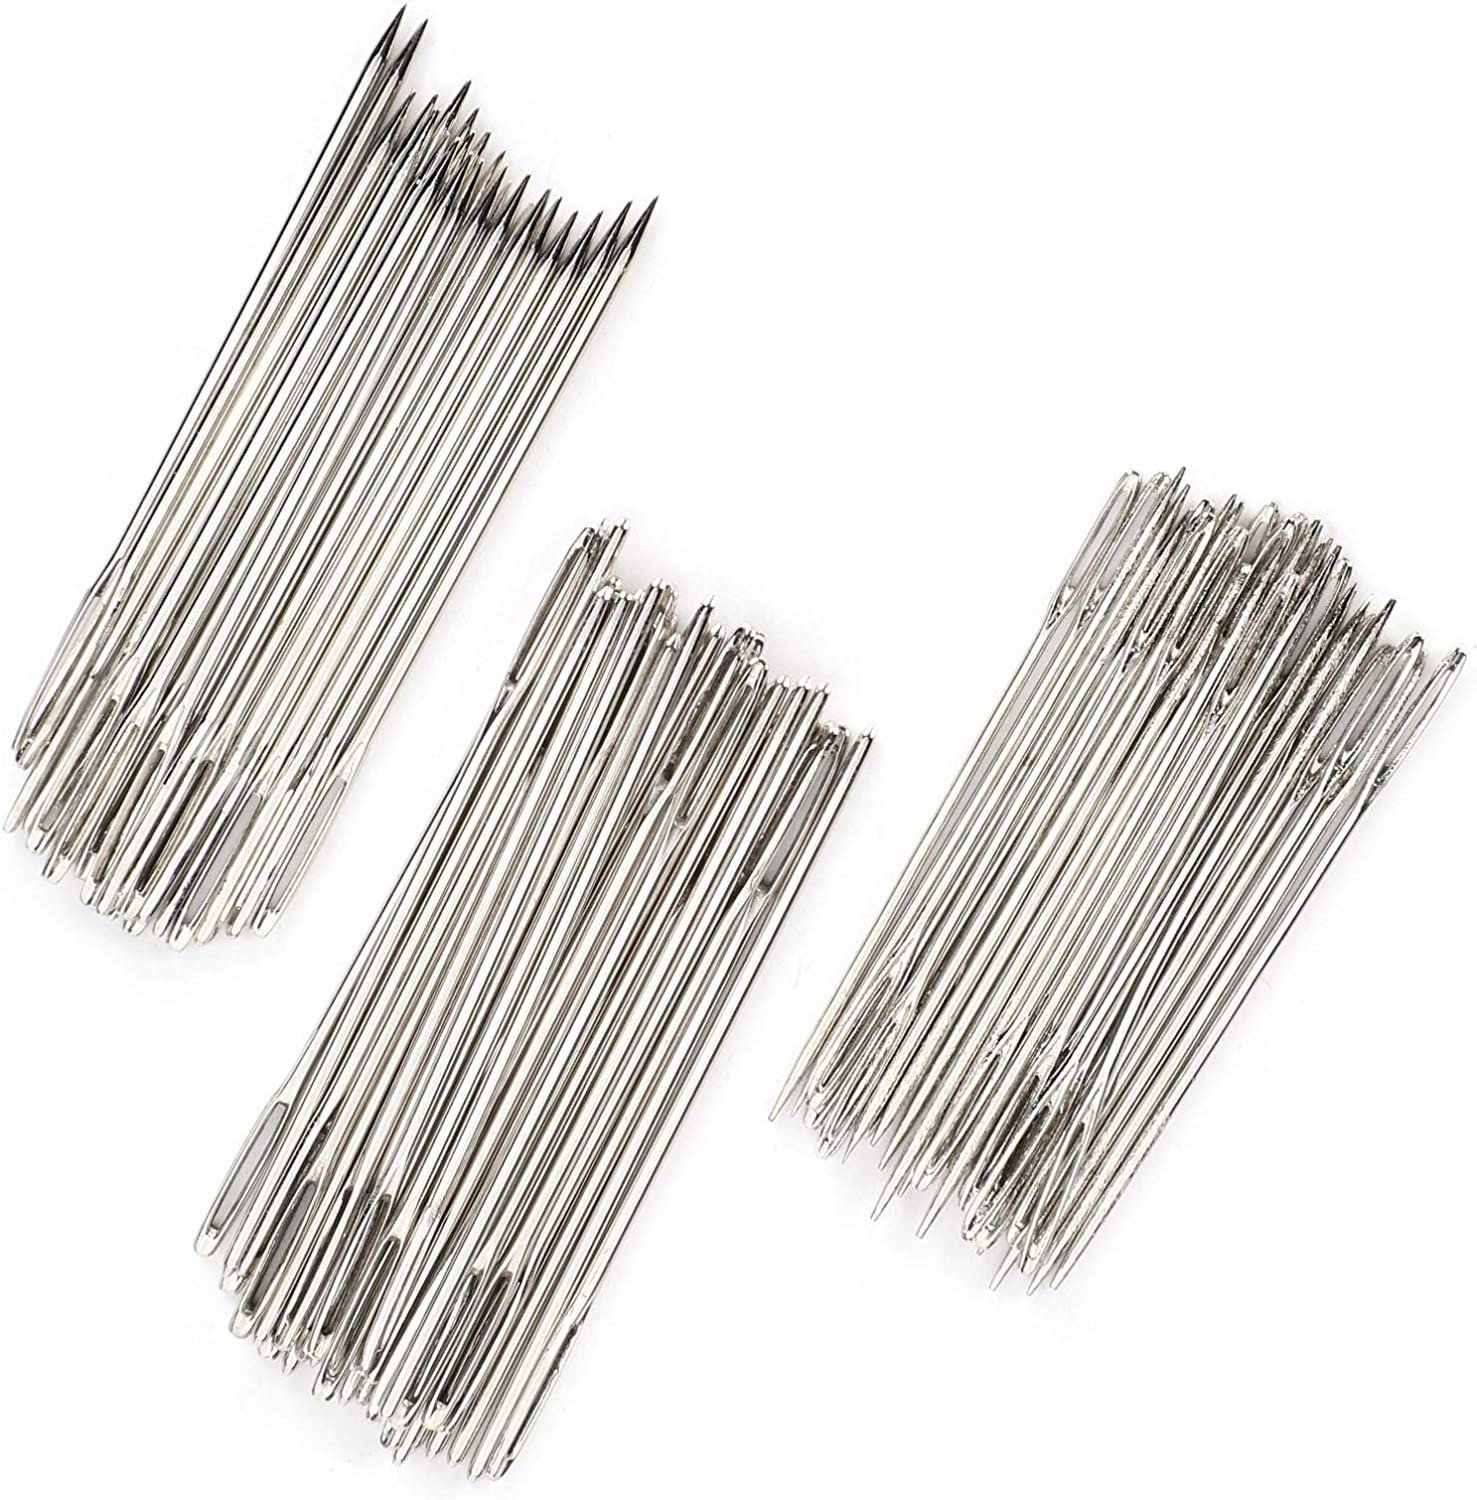 Embroidery Needles 55% OFF Inventory cleanup selling sale Hand-Stitching Household Stainless